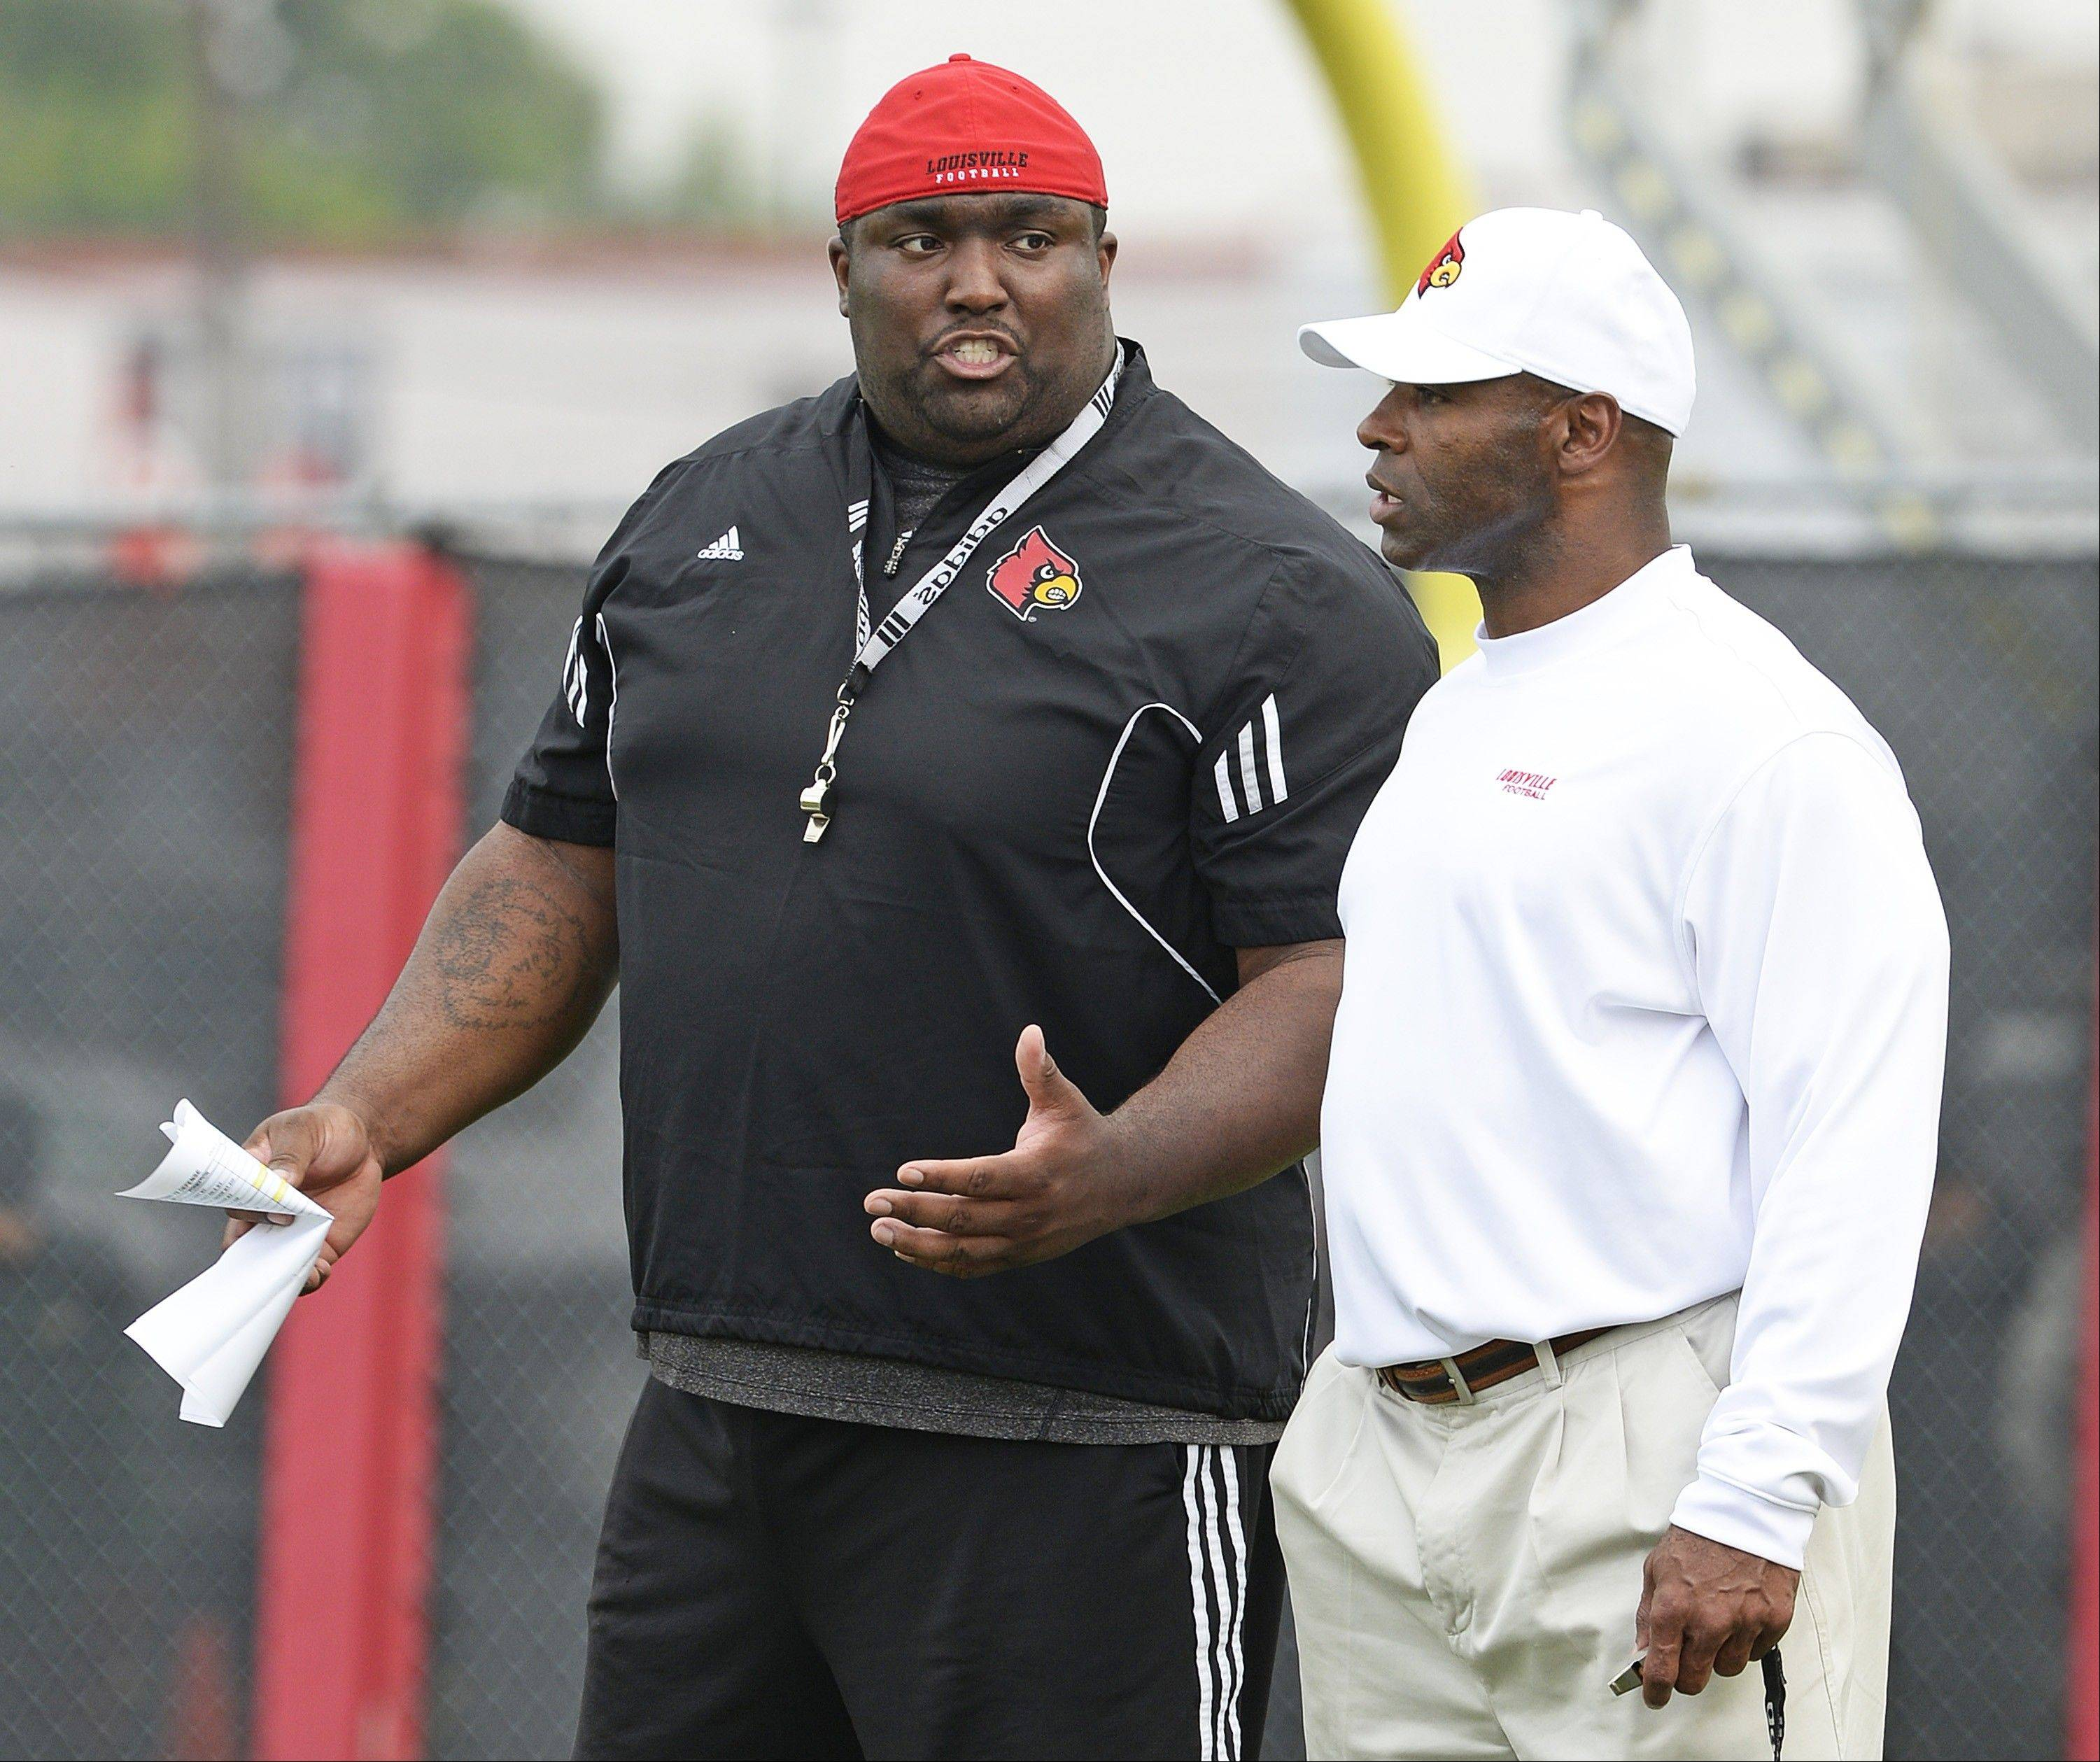 Former Louisville defensive line coach Clint Hurtt, left, helped put together the No. 1 college defense with head coach Charlie Strong last season. Hurtt has joined the Bears as a defensive line assistant.